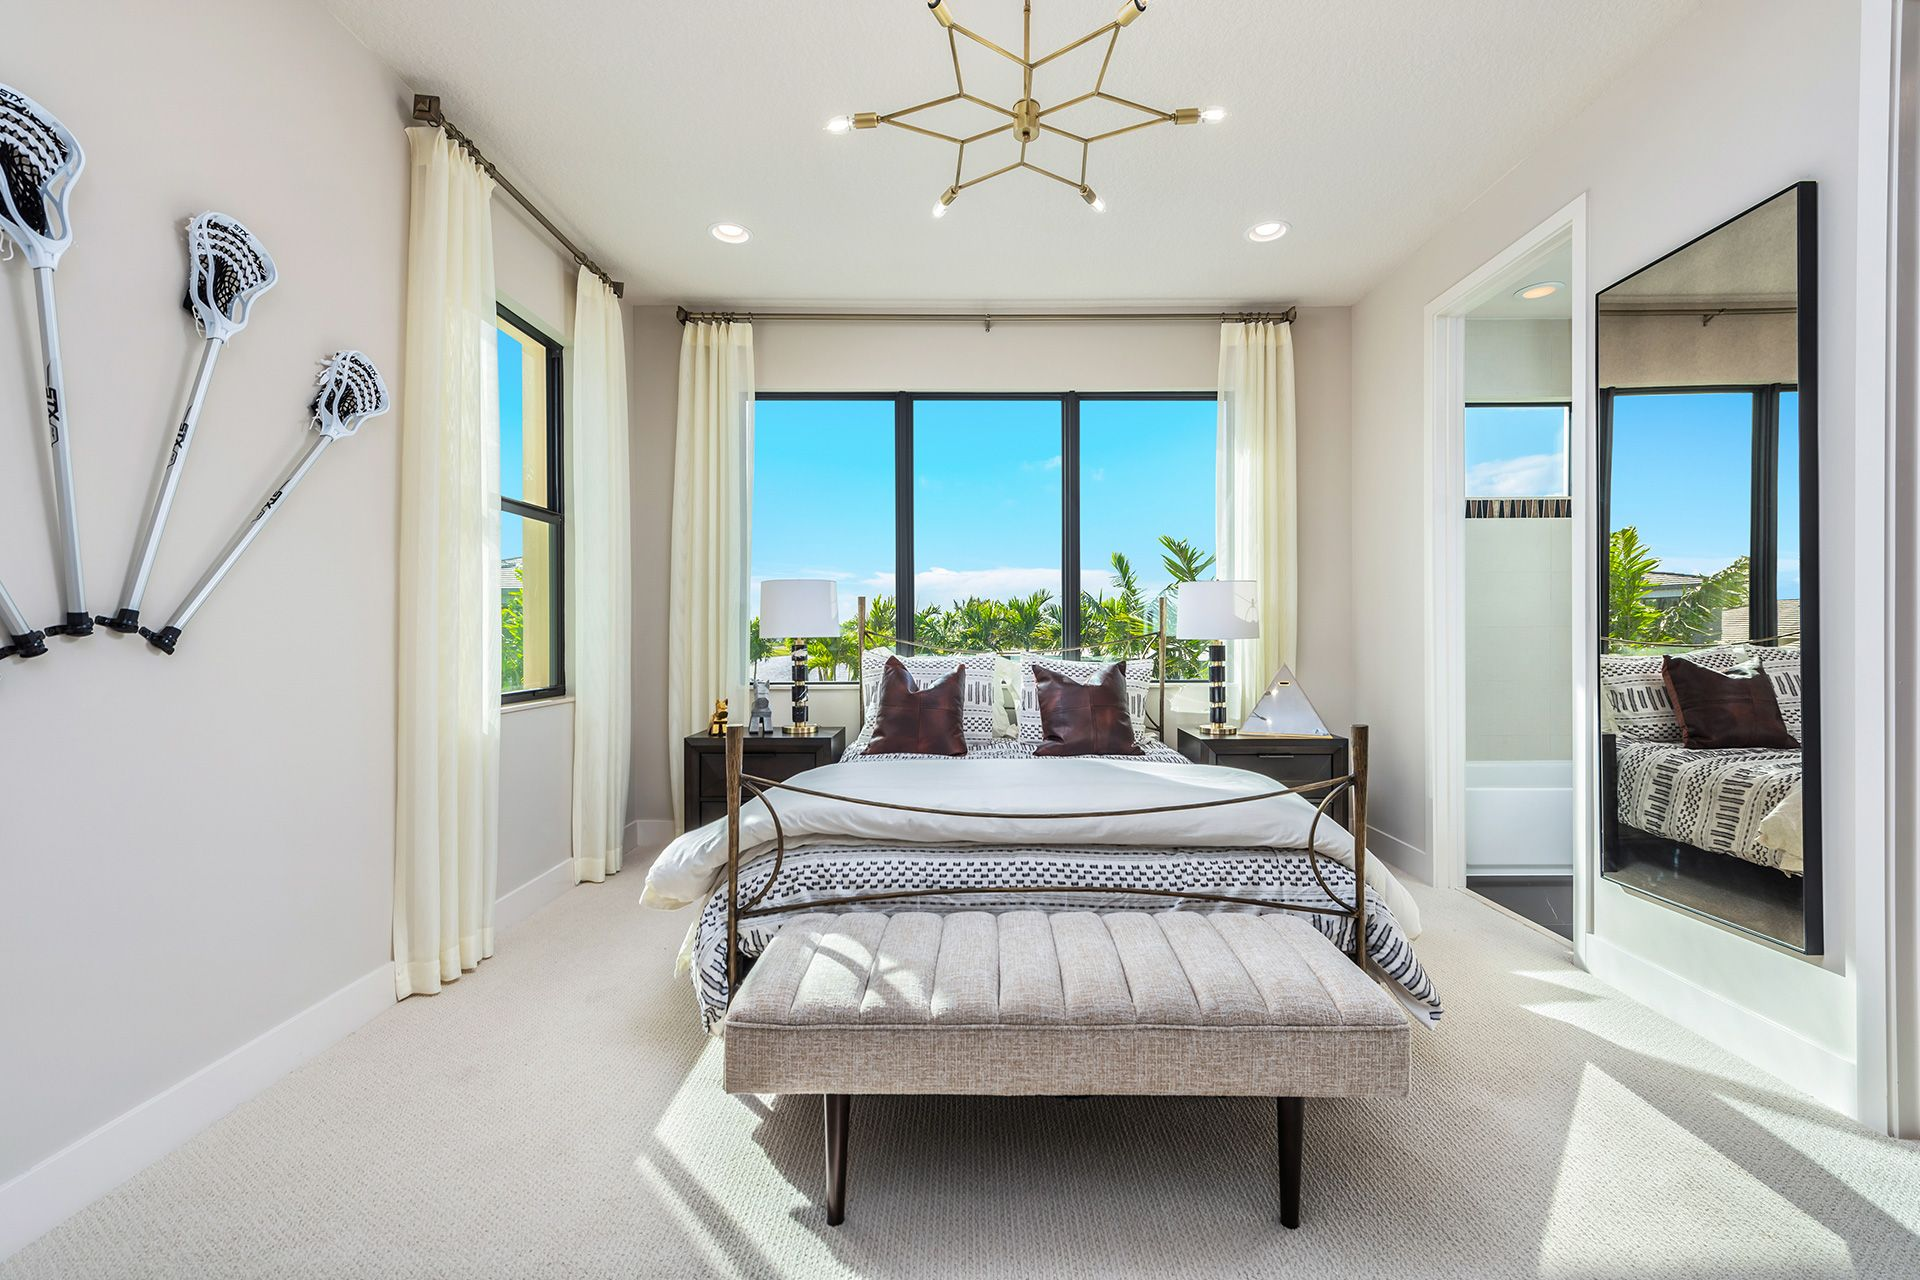 Bedroom featured in the Mariana By GL Homes in Palm Beach County, FL